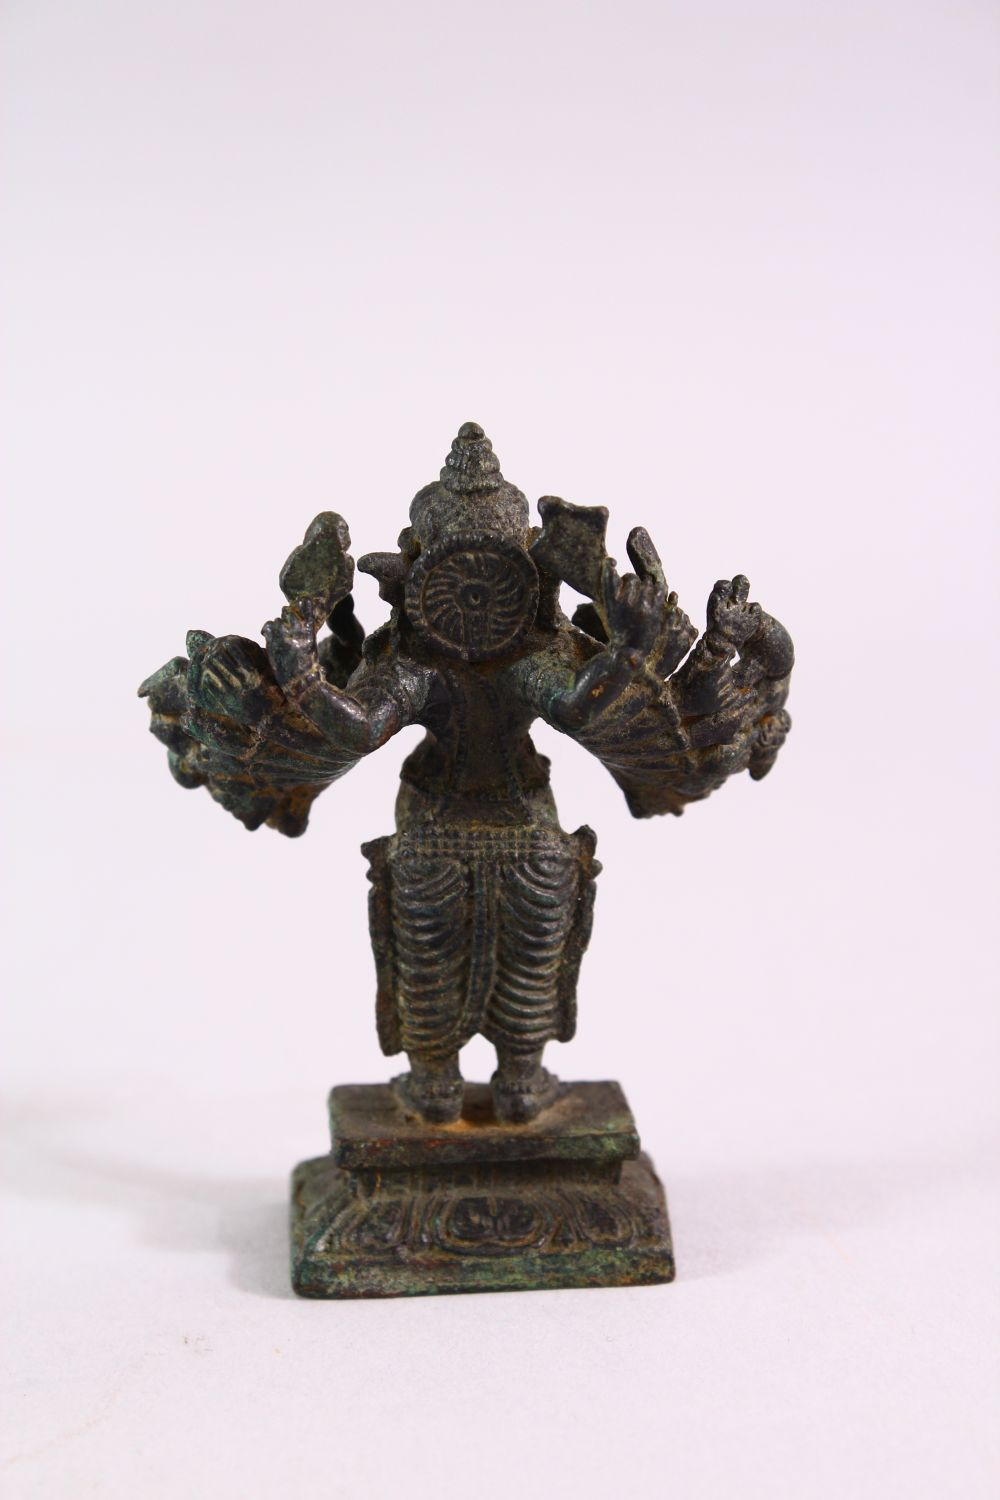 A FINE SMALL EARLY INDIAN BRONZE FIGURE OF GANESH, 7cm high. - Image 4 of 6